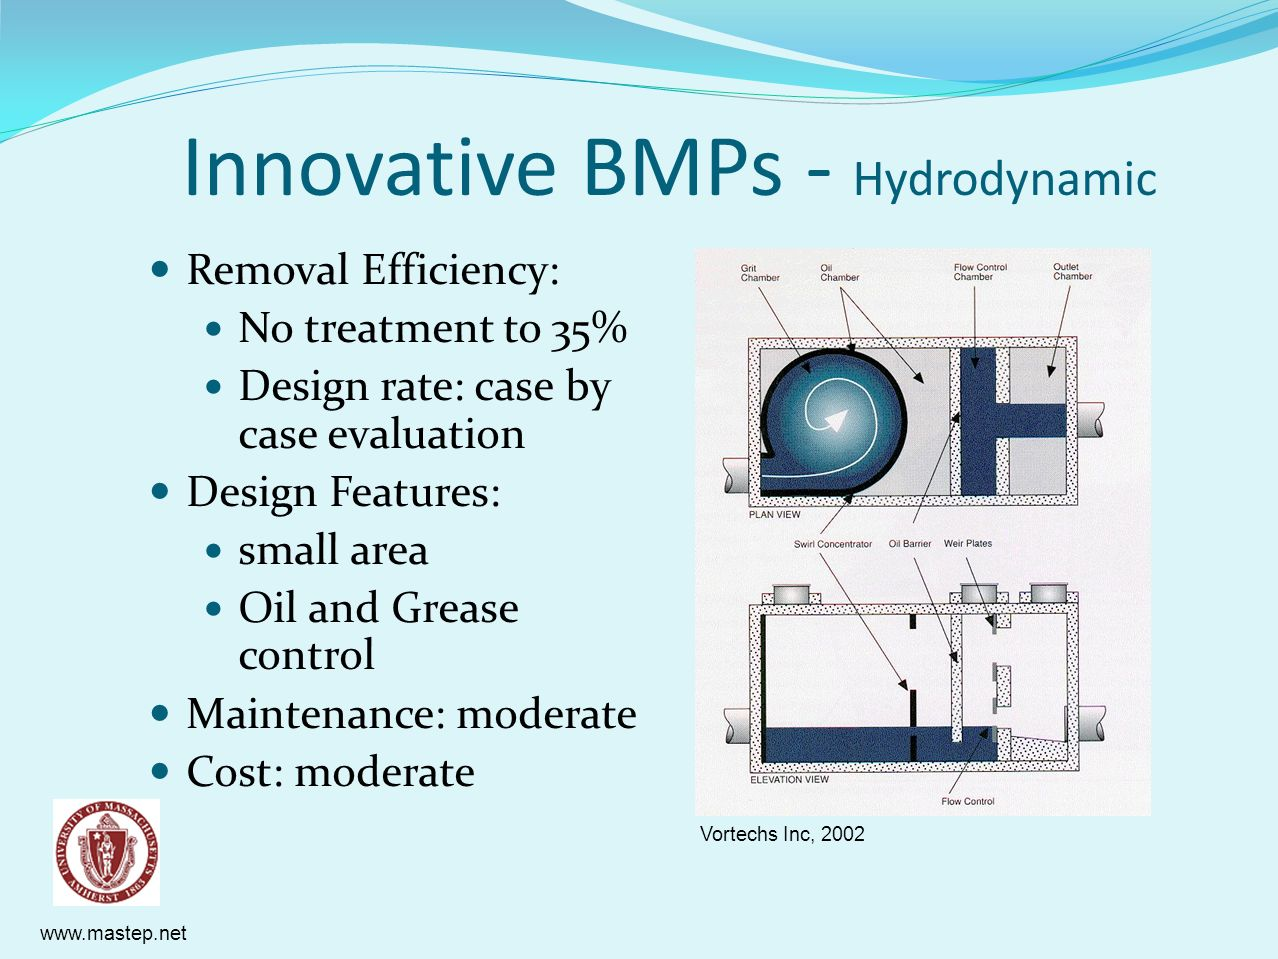 Innovative BMPs - Hydrodynamic